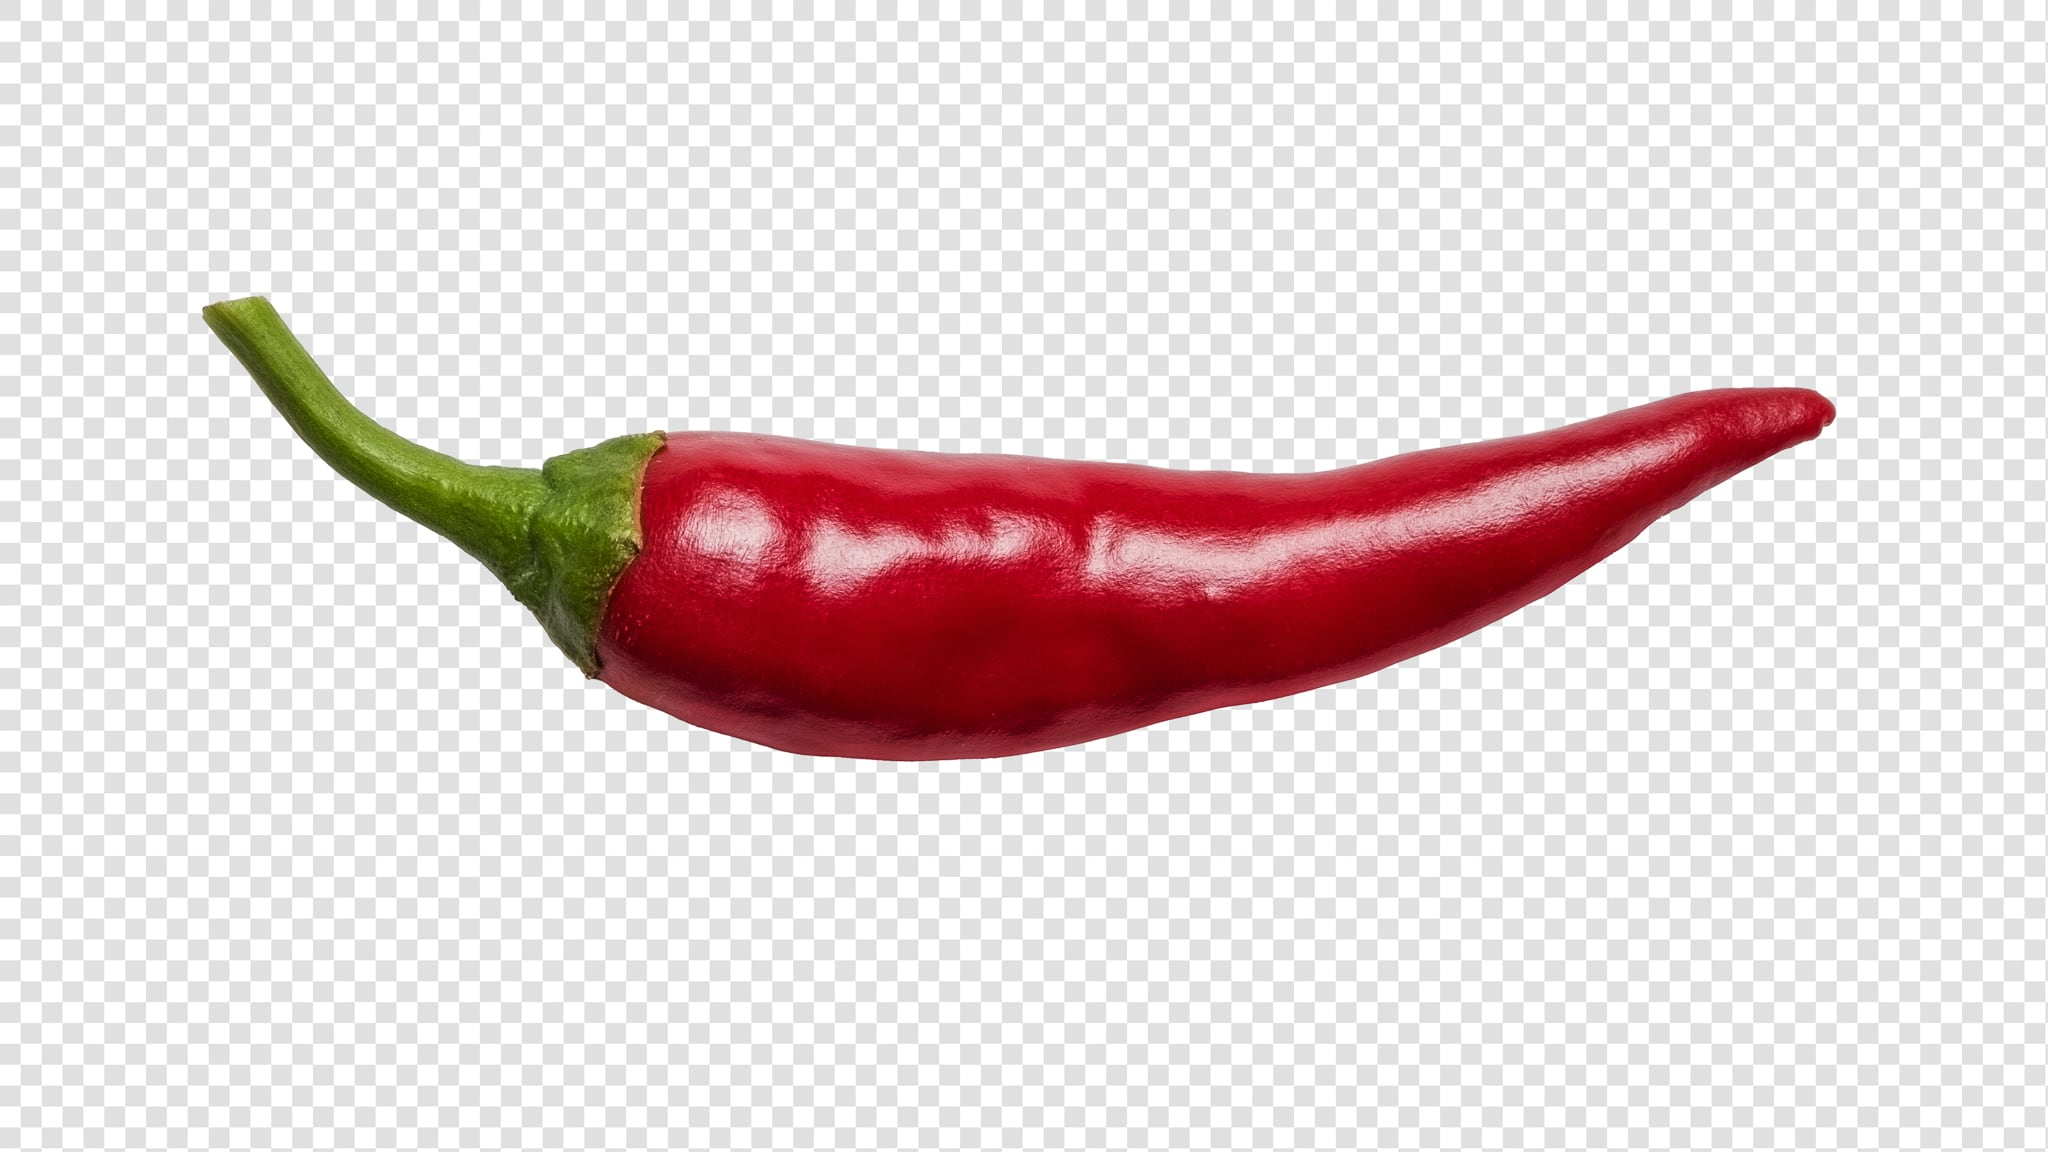 Pepper PSD image with transparent background